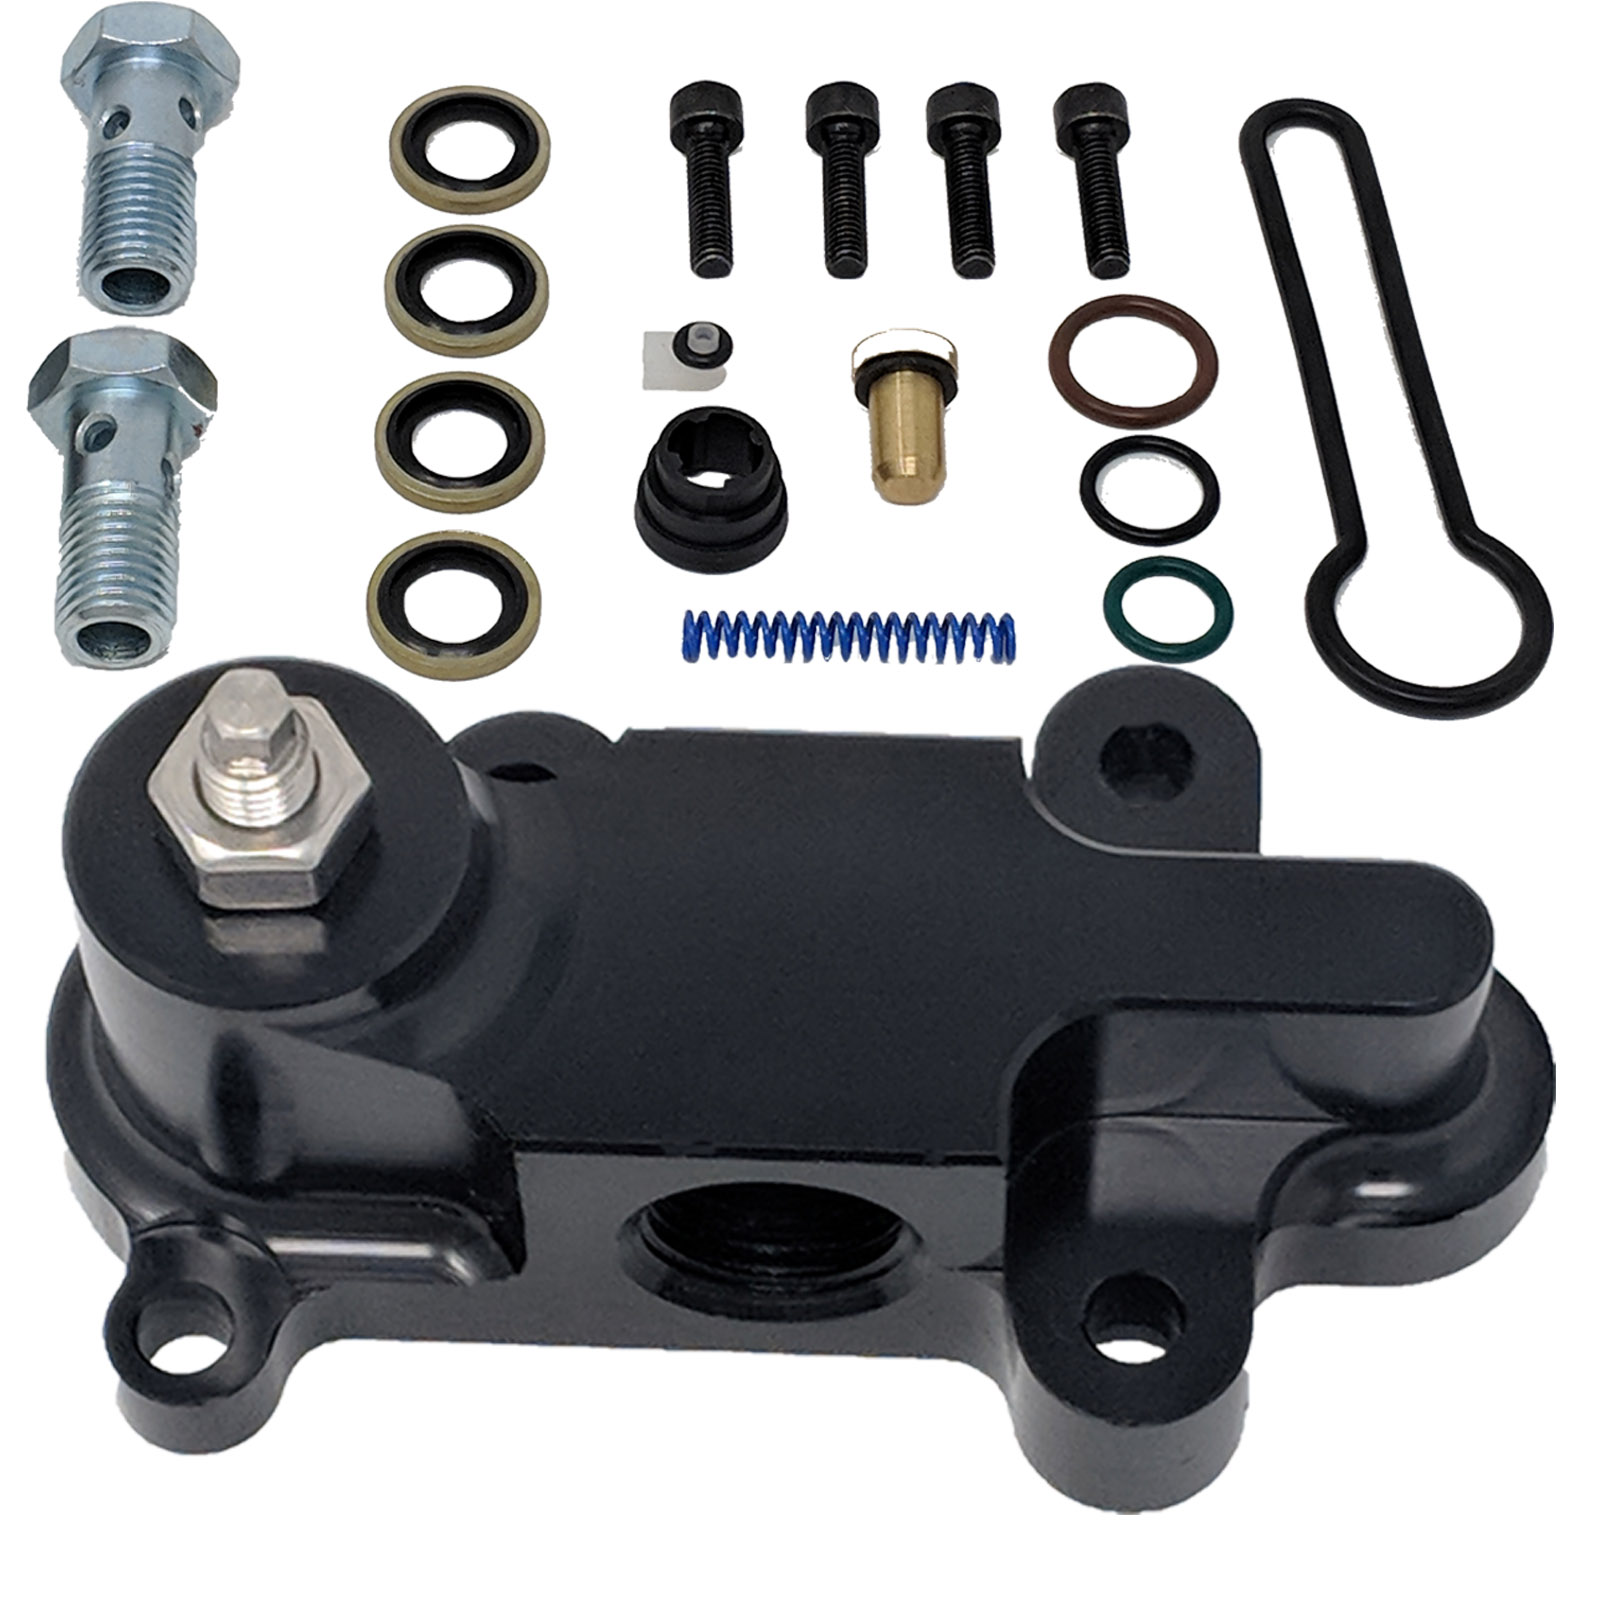 2003-2007 Ford 6.0L Powerstroke Billet Fuel Pressure Regulator Upgrade Kit